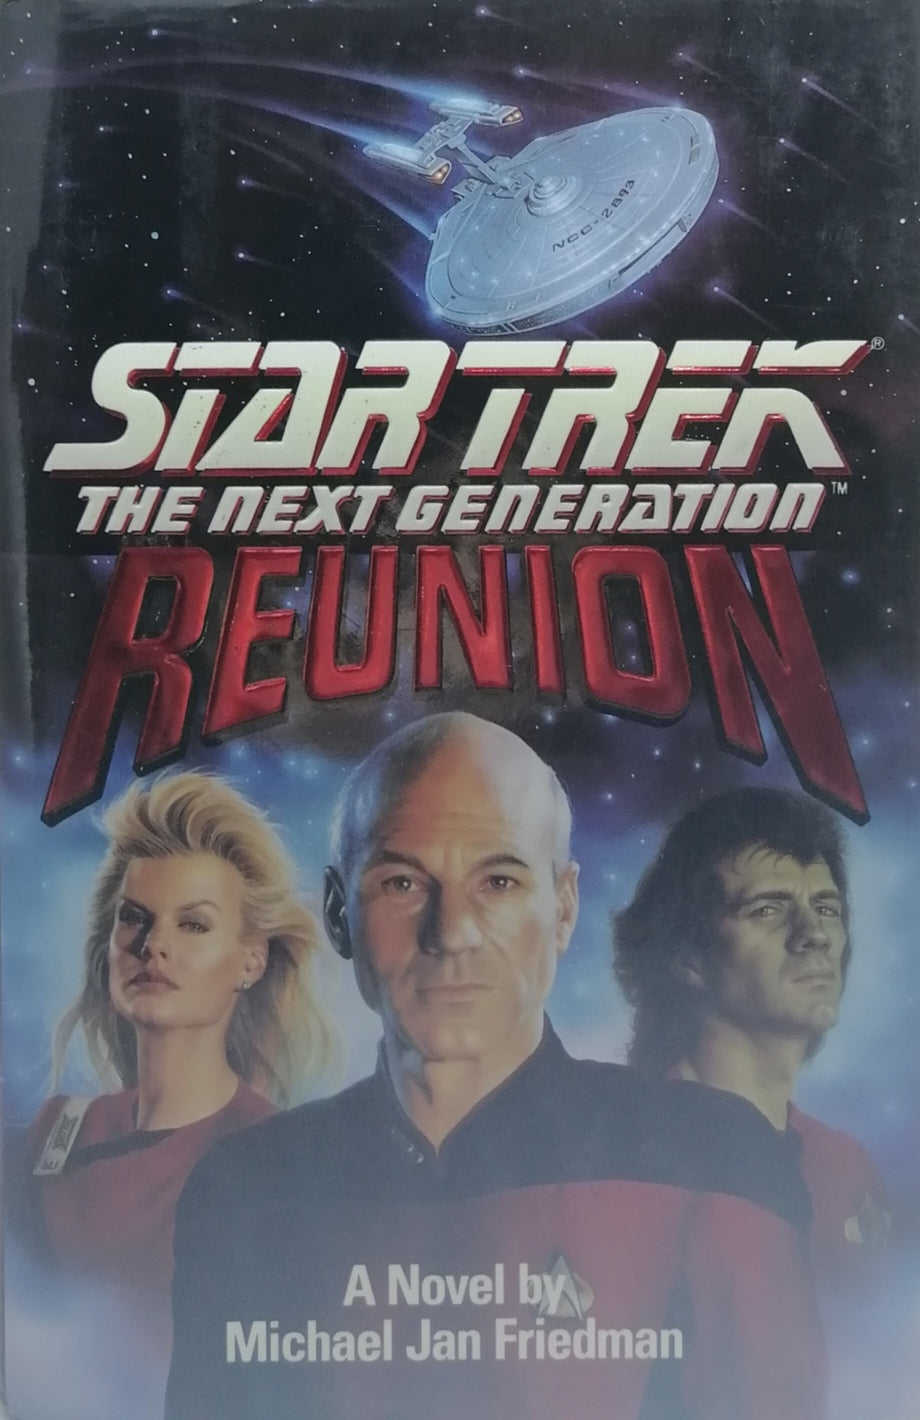 Star trek the next generation Reunion by Michael Jan Friedman